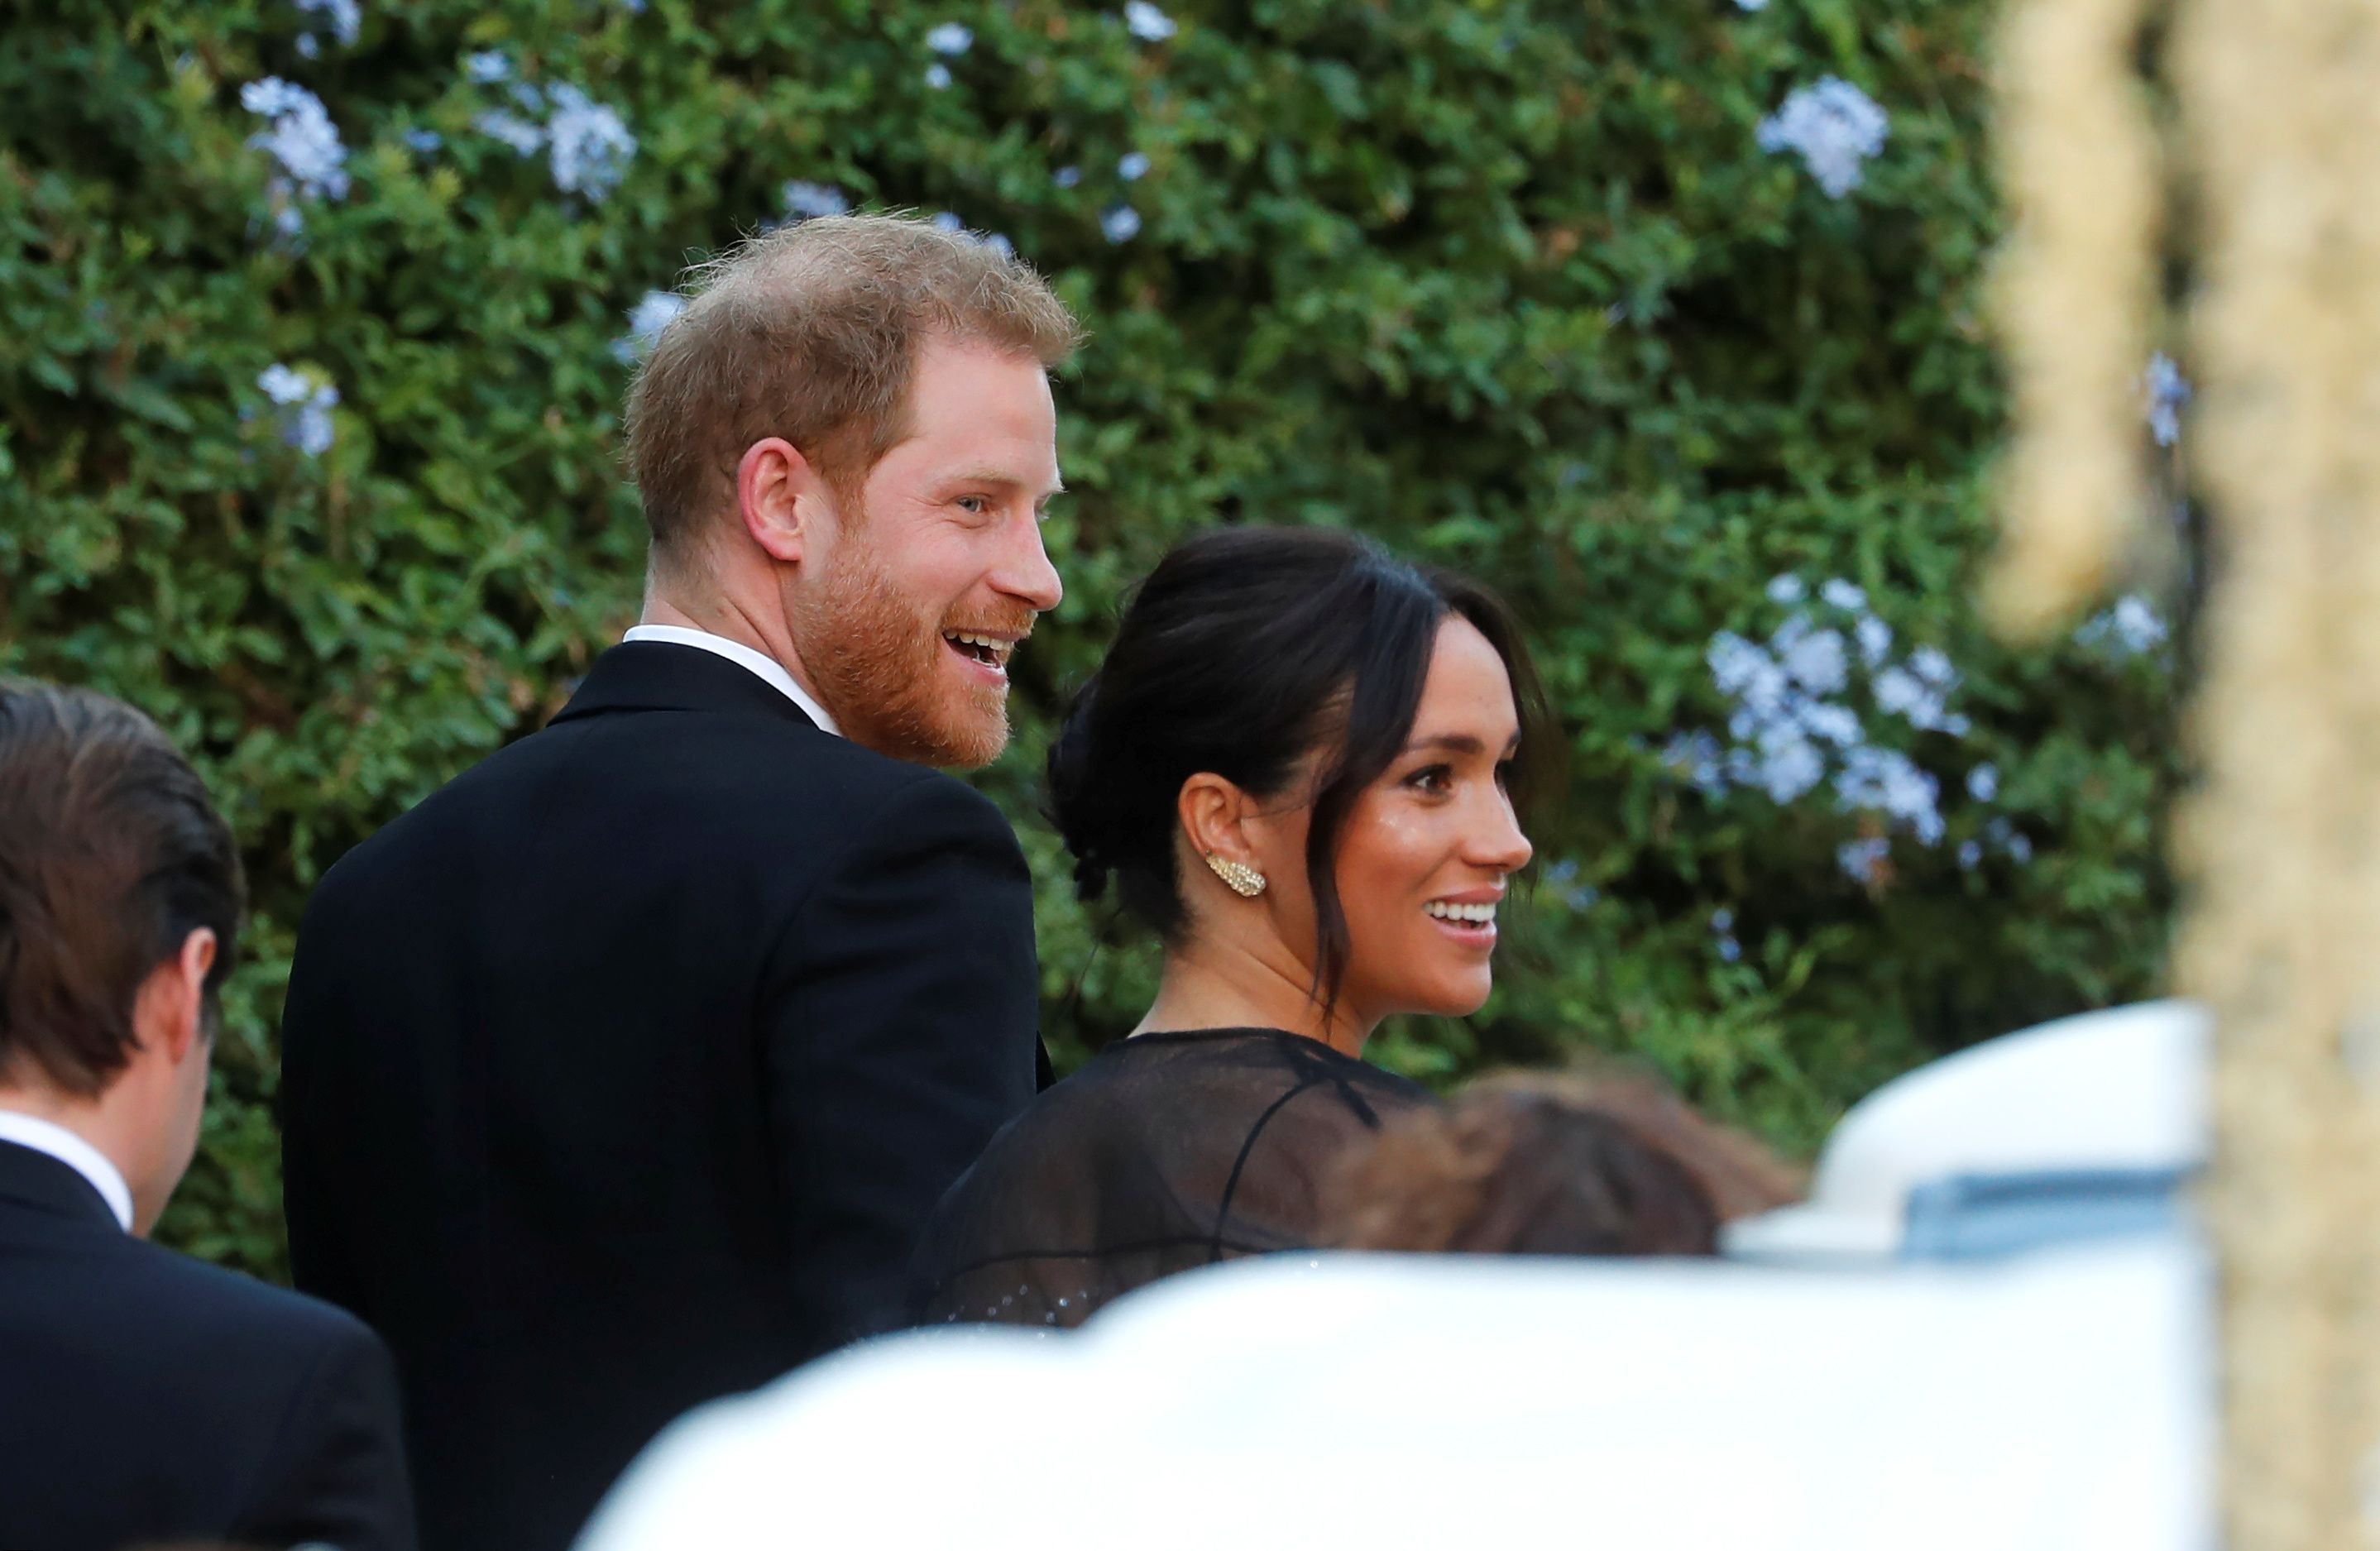 Meghan Markle and Prince Harry Have ARRIVED at Misha Nonoo's Wedding and They Look Gorgeous